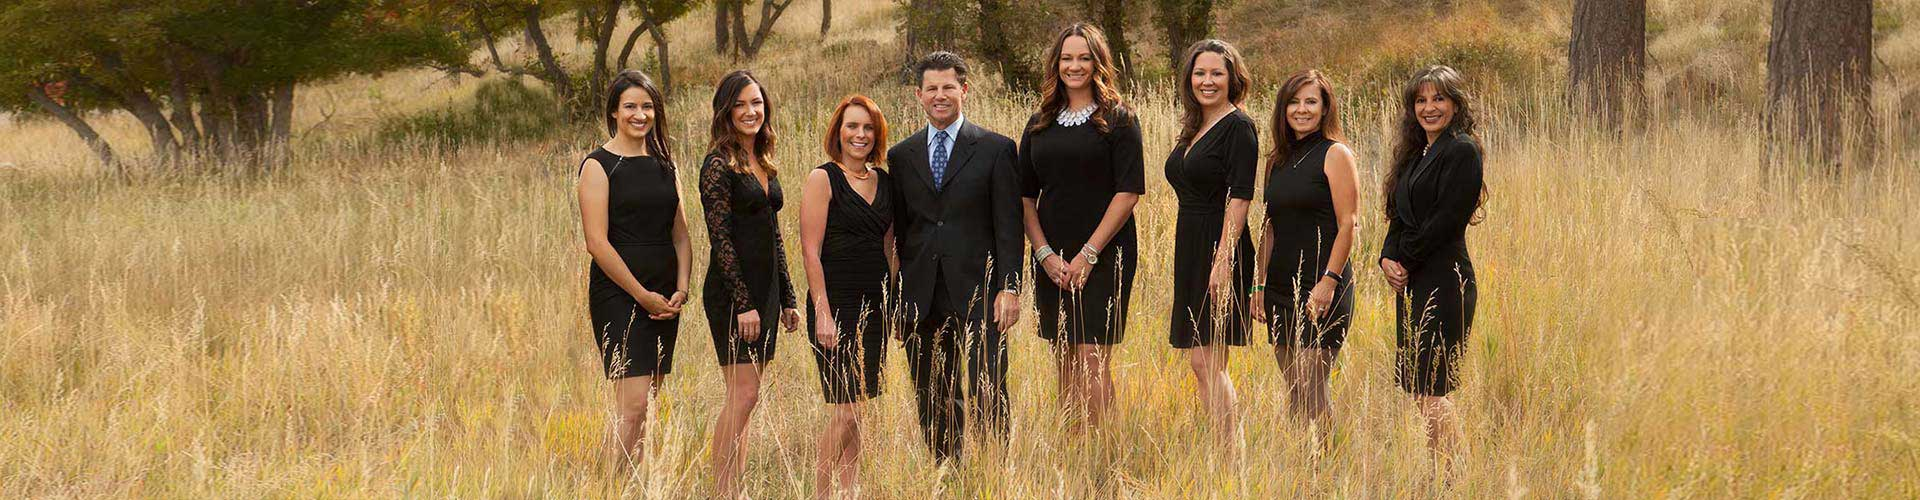 Meet The Team Colorado Springs Dentist Office Guerra Dental